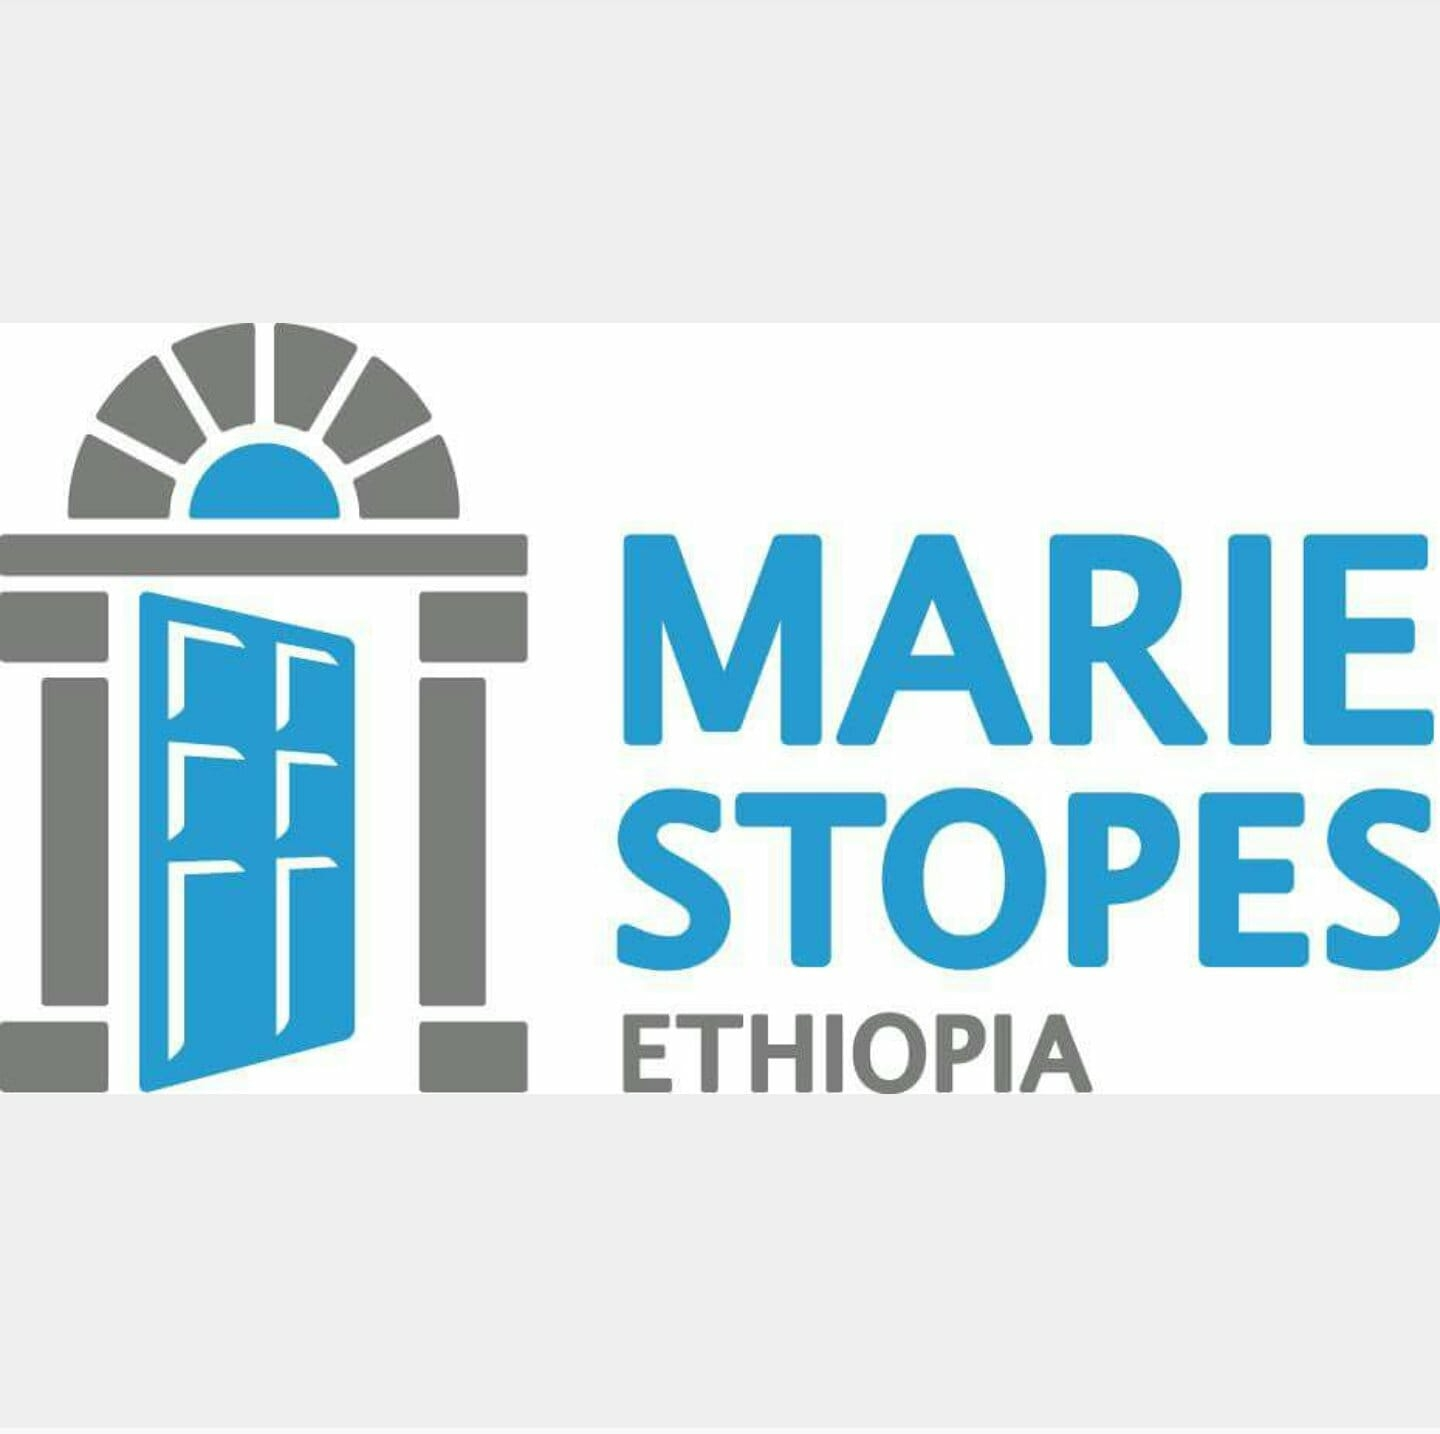 Ambulance Driver job in ethiopia | GeezJobs